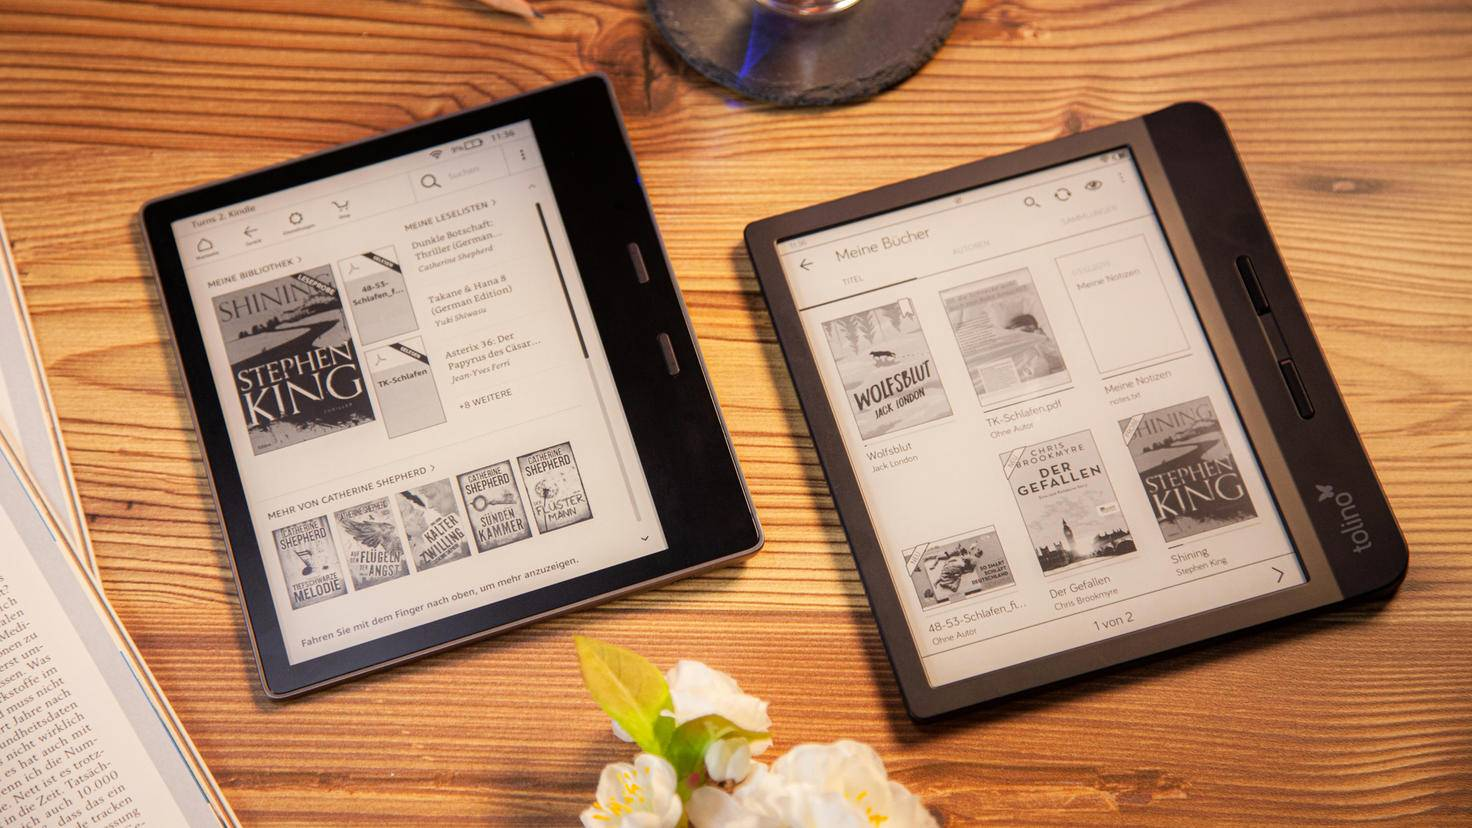 Kindle Oasis 2019 vs Tolino vision 5